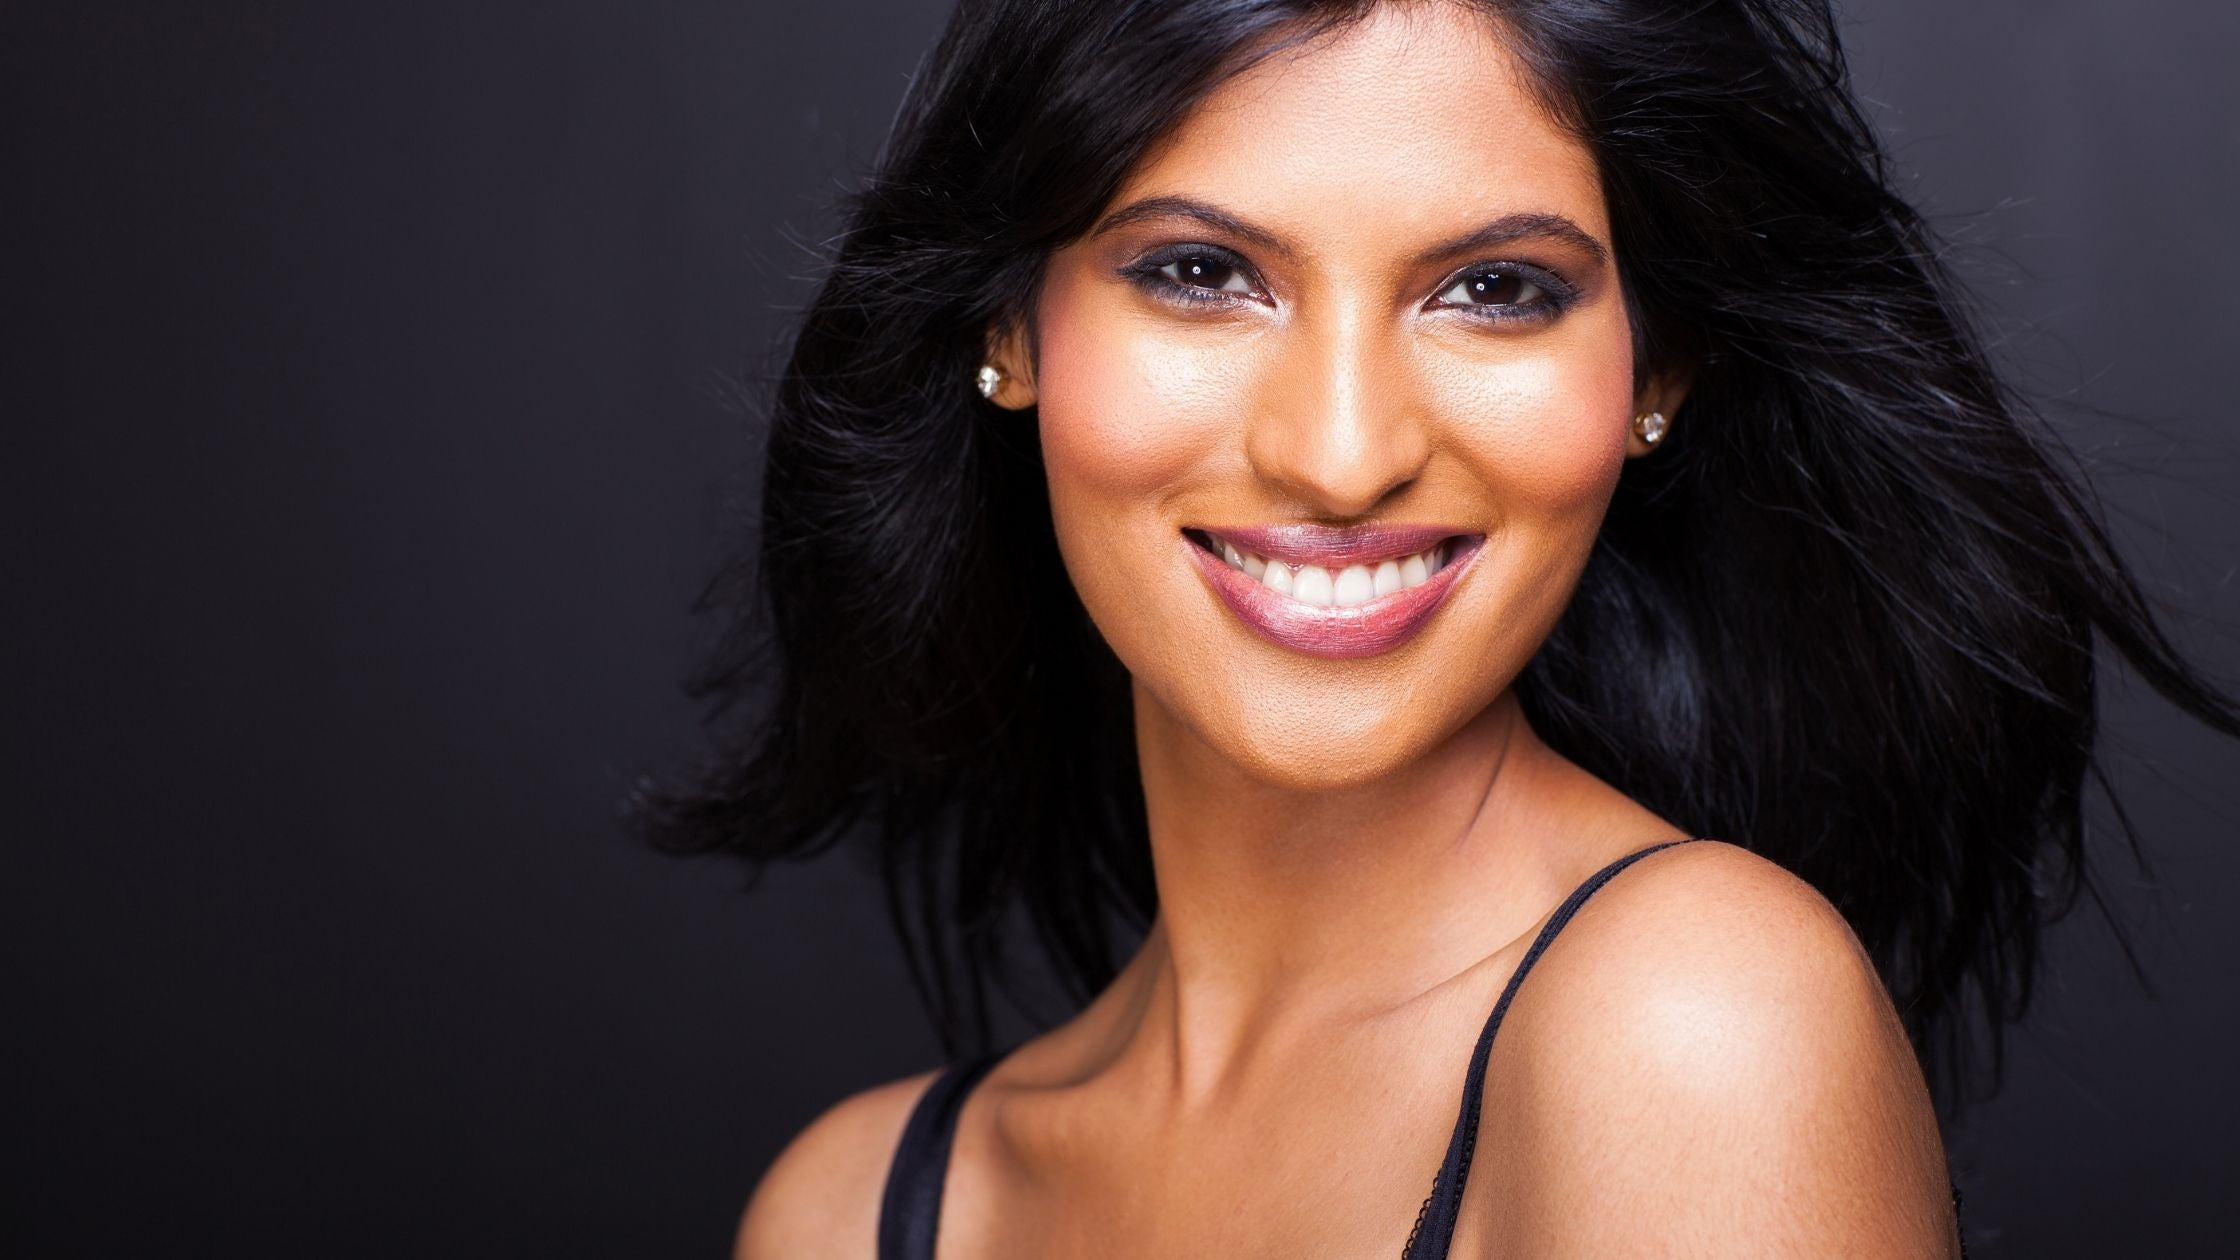 Why are Indians prone to hyperpigmentation?